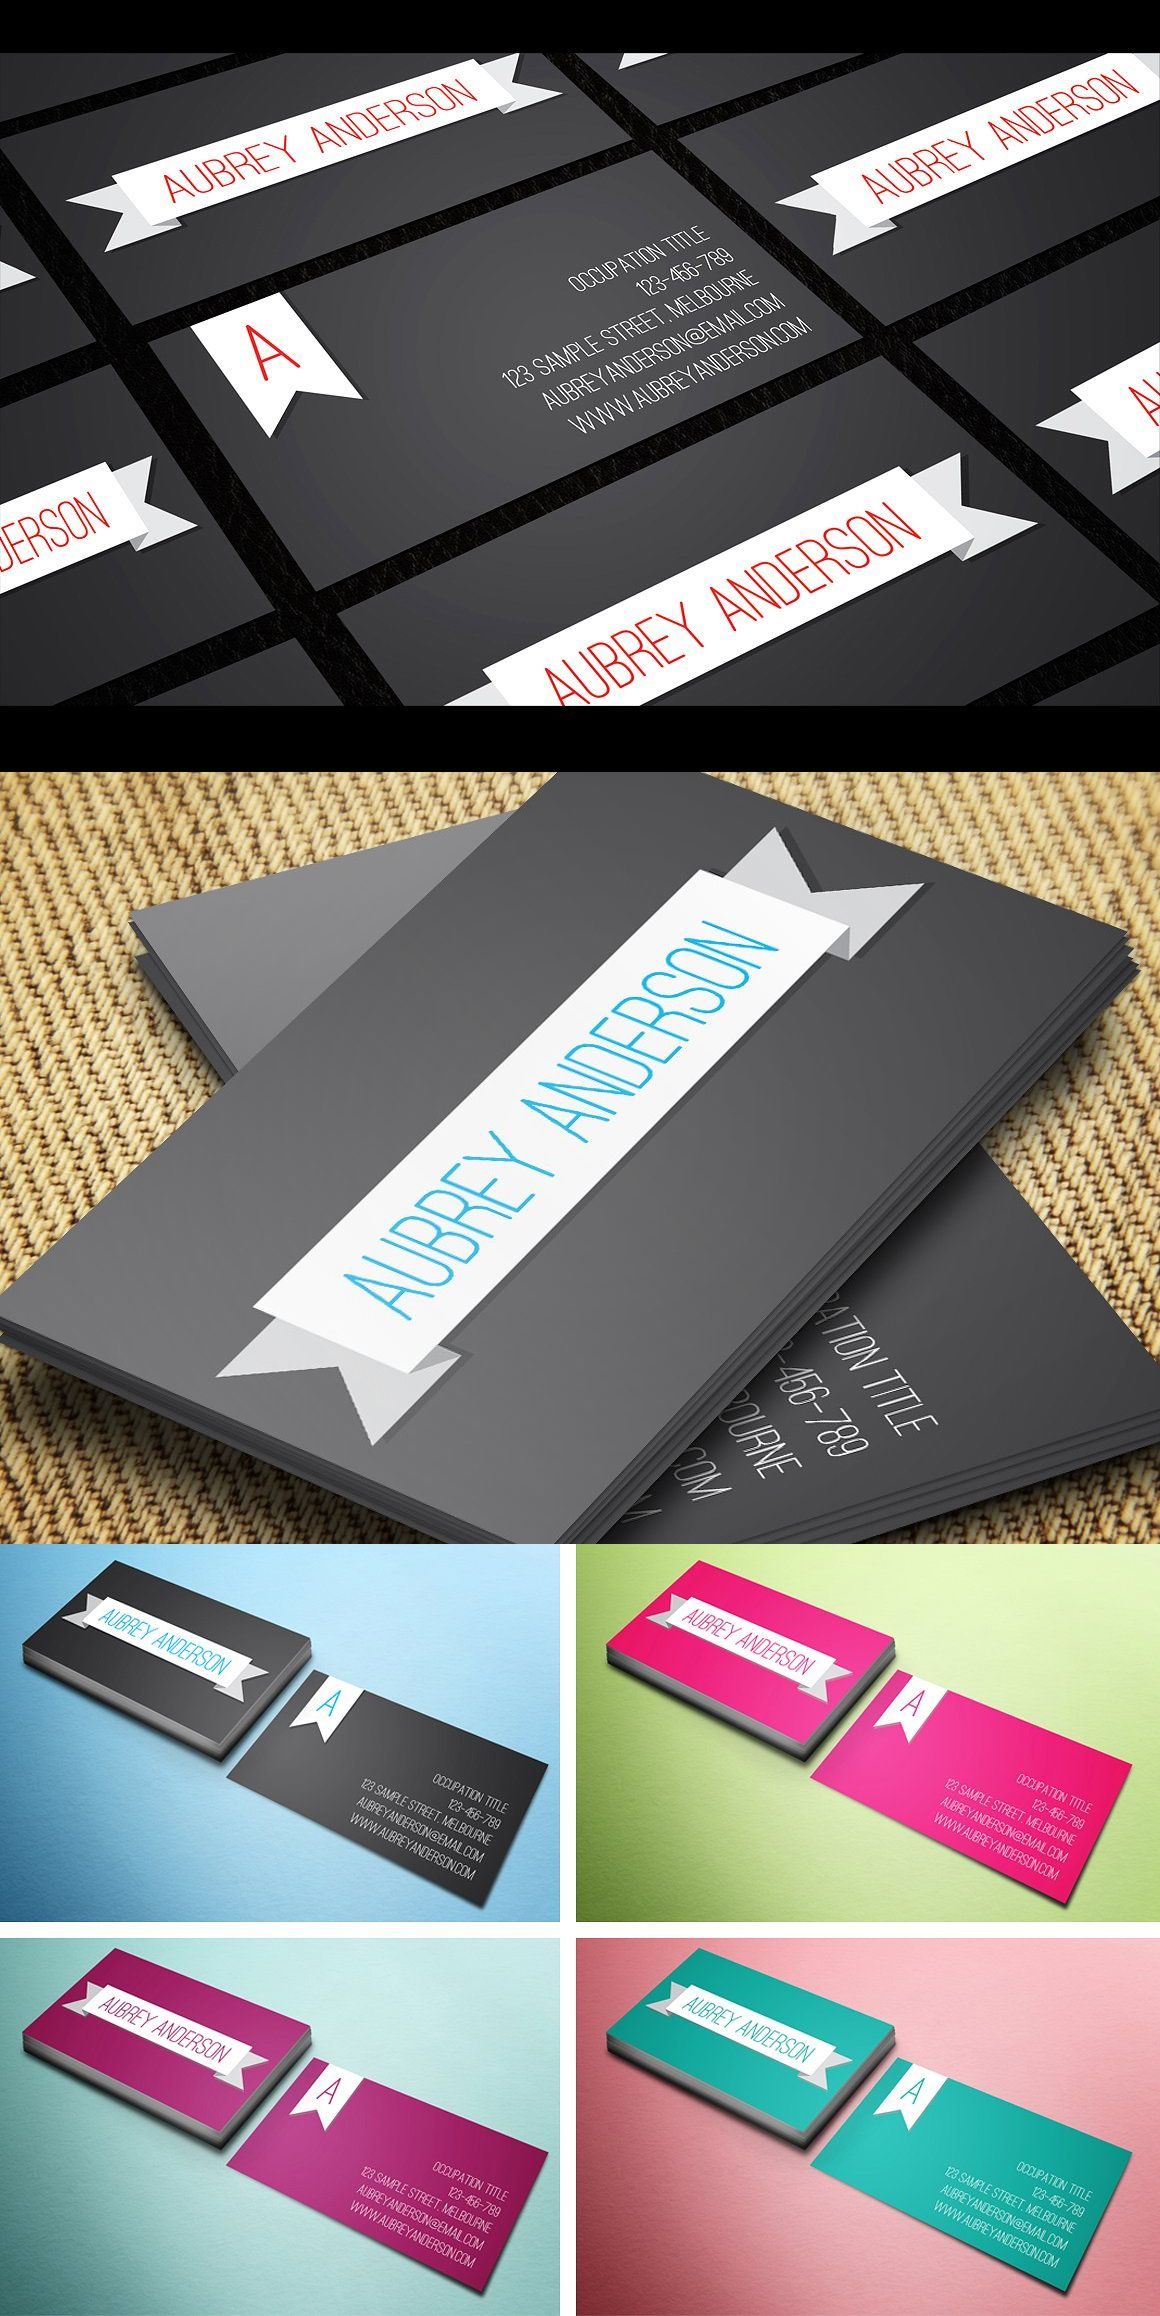 Aubrey business card template eps business card templates aubrey business card template eps business card templates business card design business cards accmission Gallery